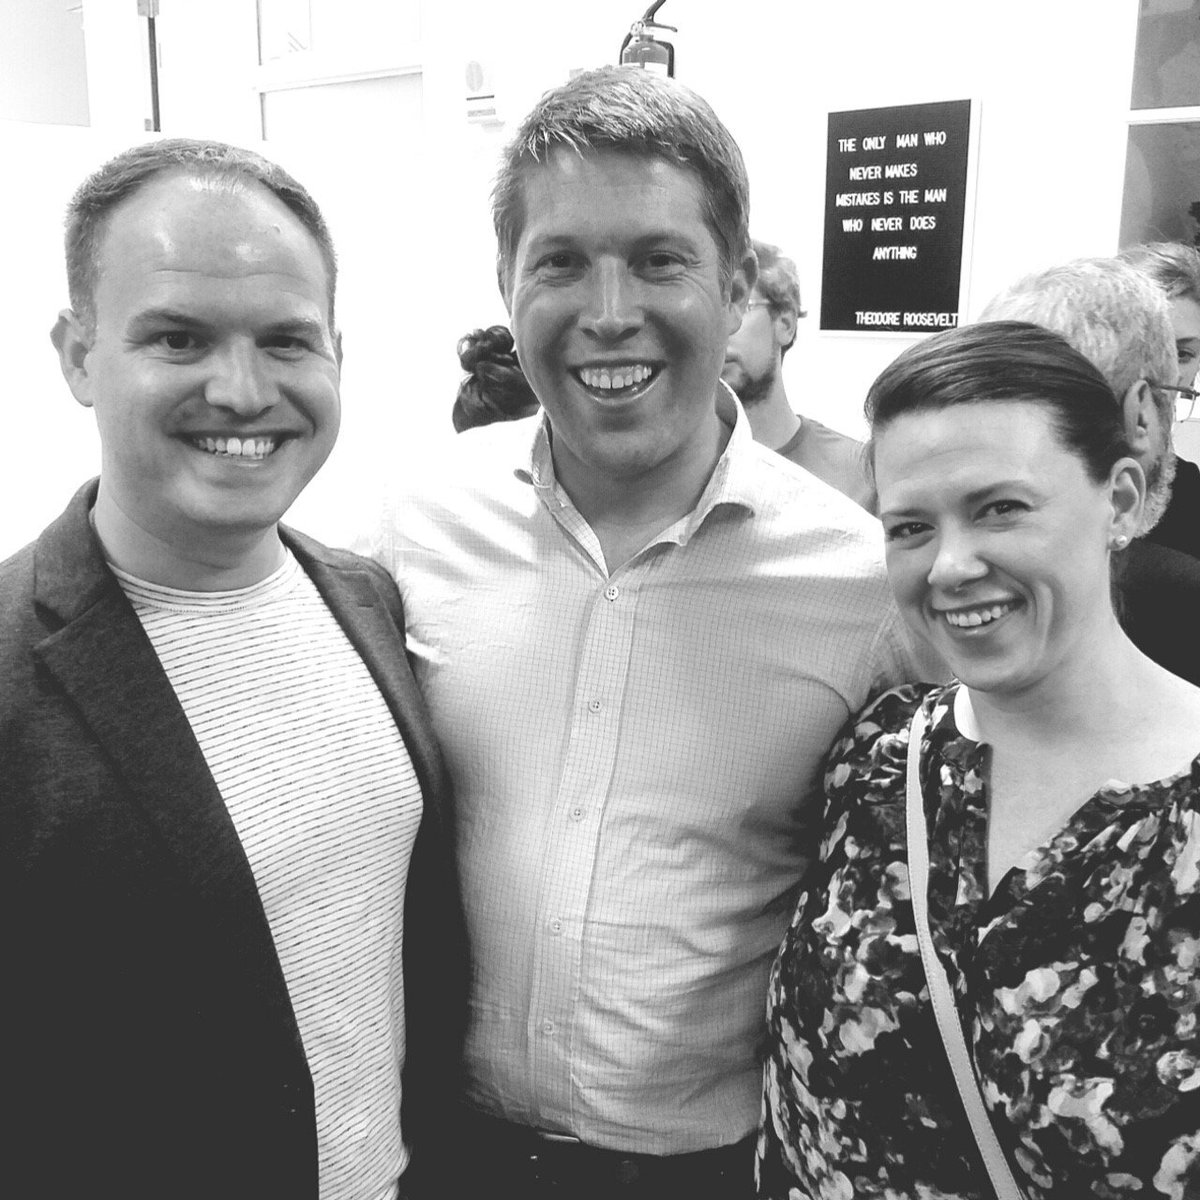 #TBT to @rossbaird book launch party at #SOCAP17.  Hear about his new book on @BizRadio111 here:  http:// bit.ly/2zlEfRa  &nbsp;  <br>http://pic.twitter.com/QCd5Tz4bSg